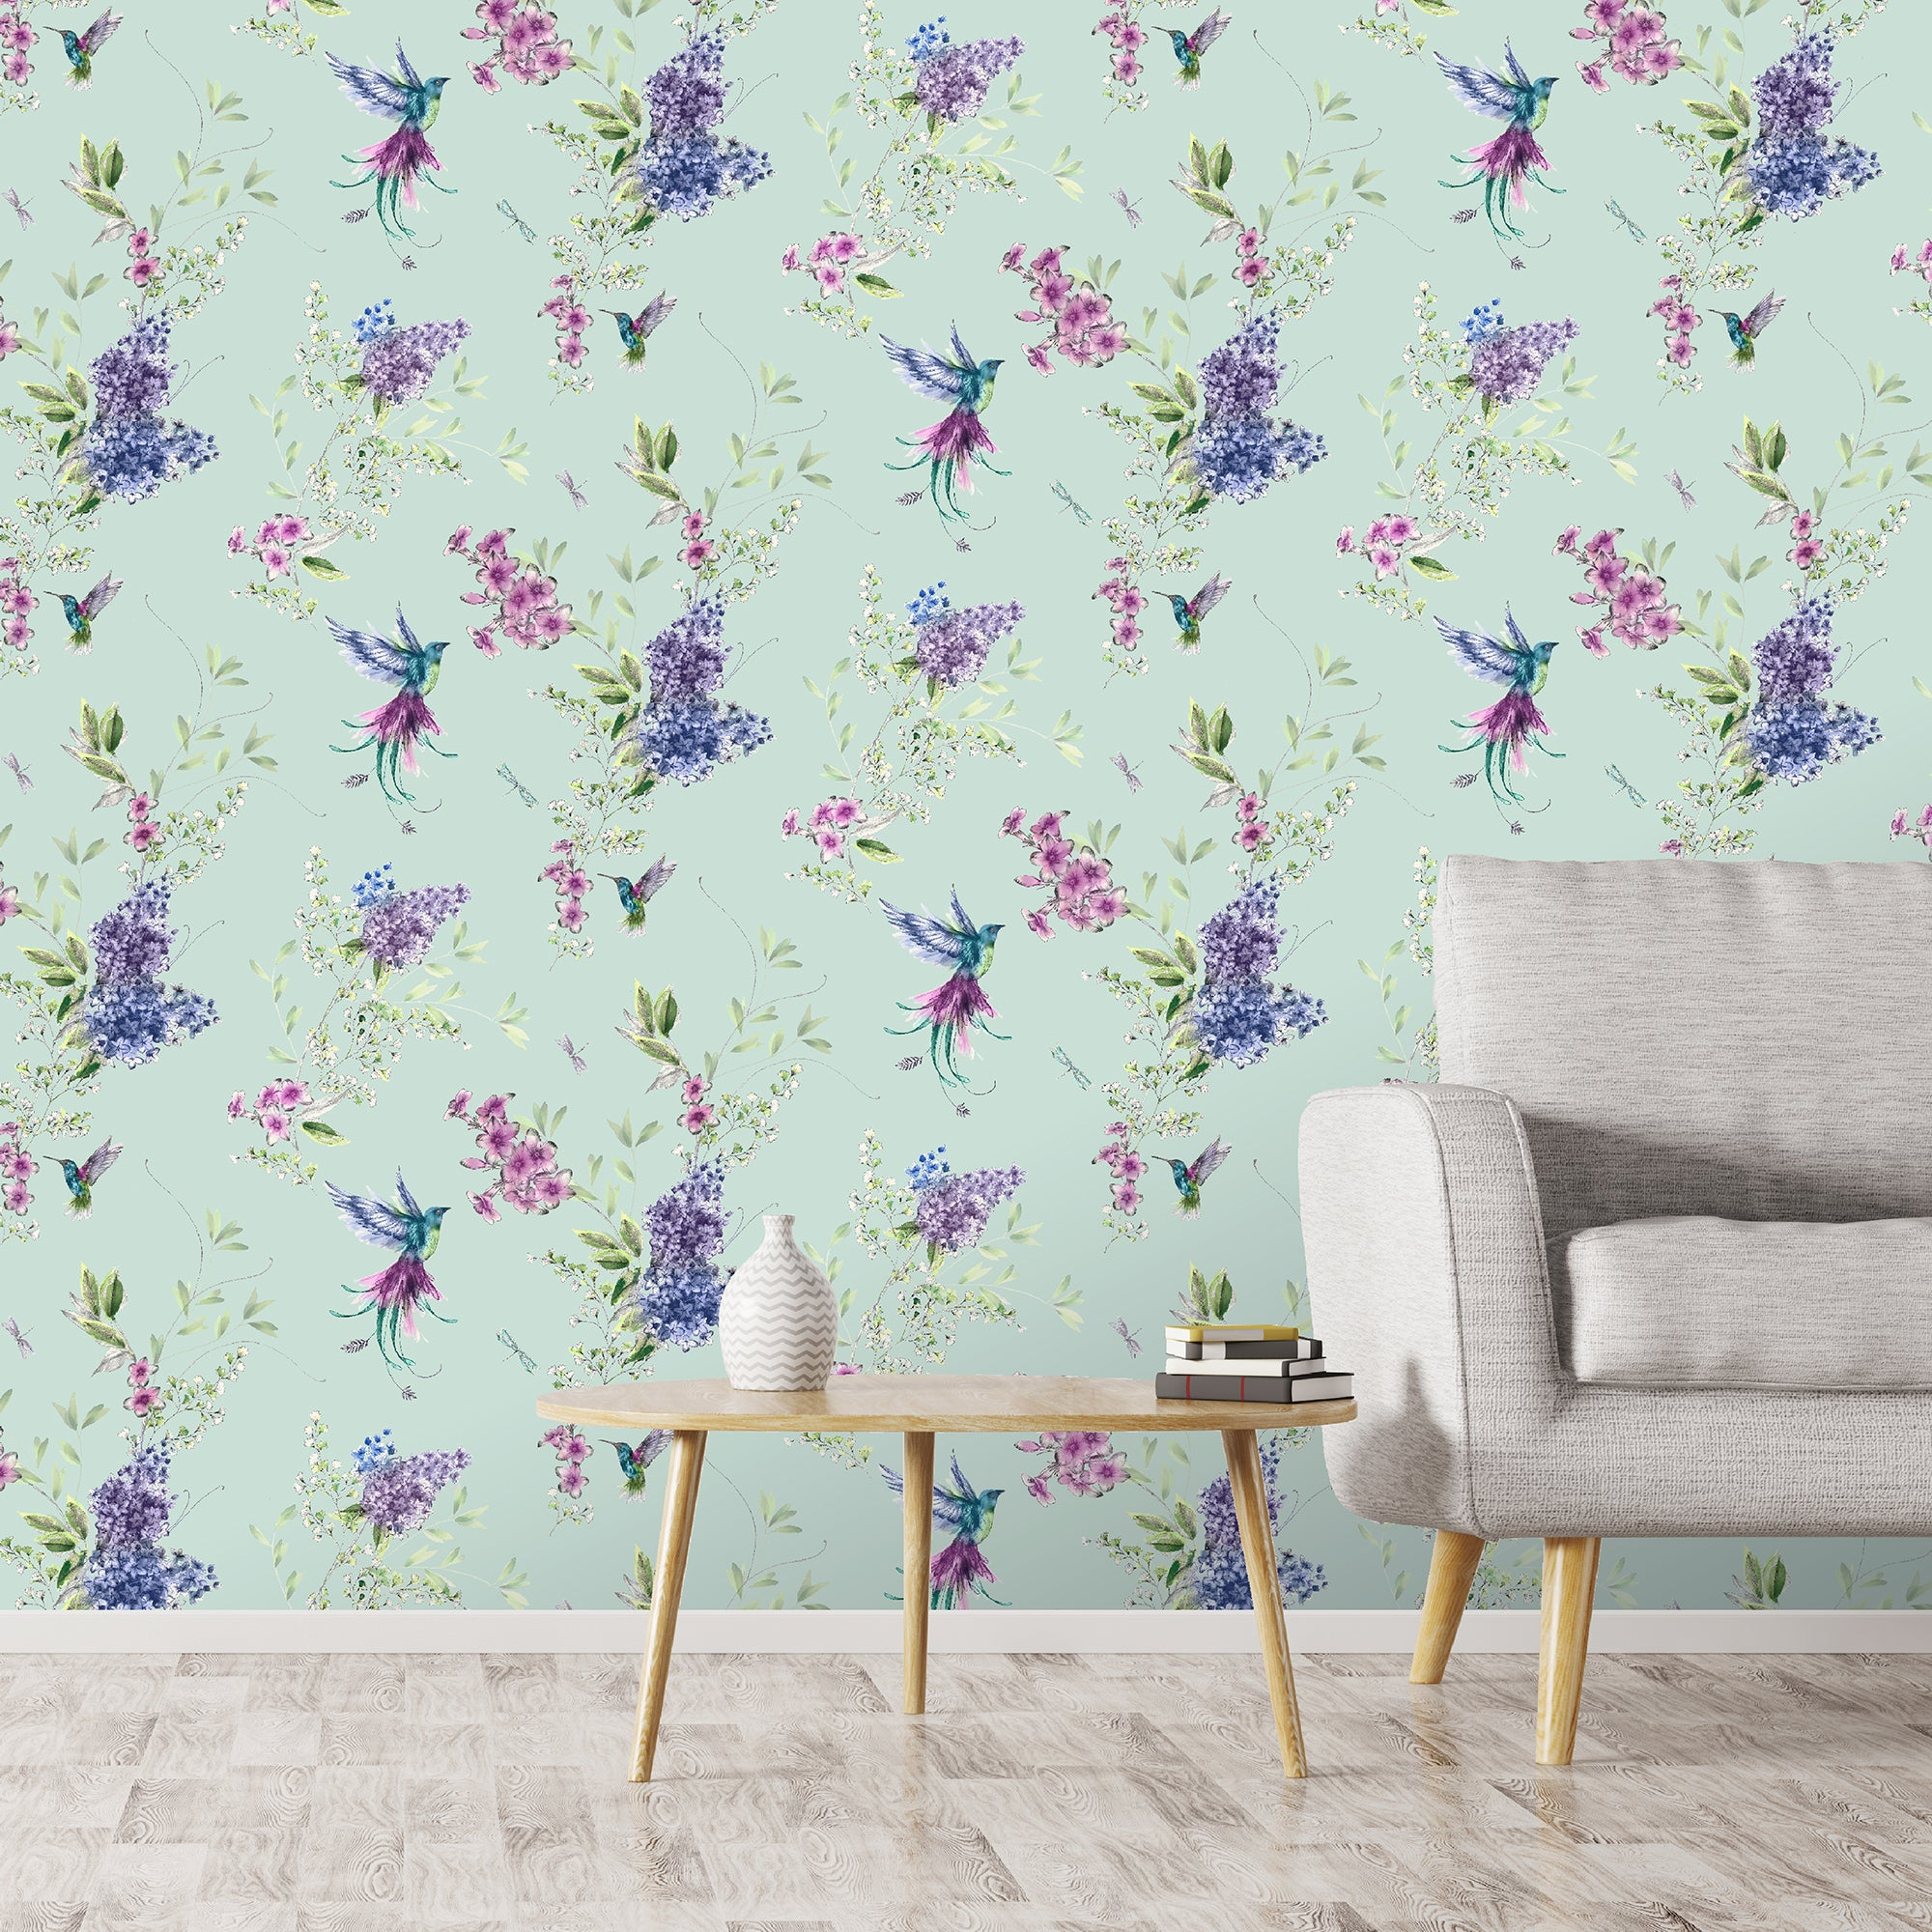 Dorma Emalia Duck Egg Wallpaper Duck Egg Blue